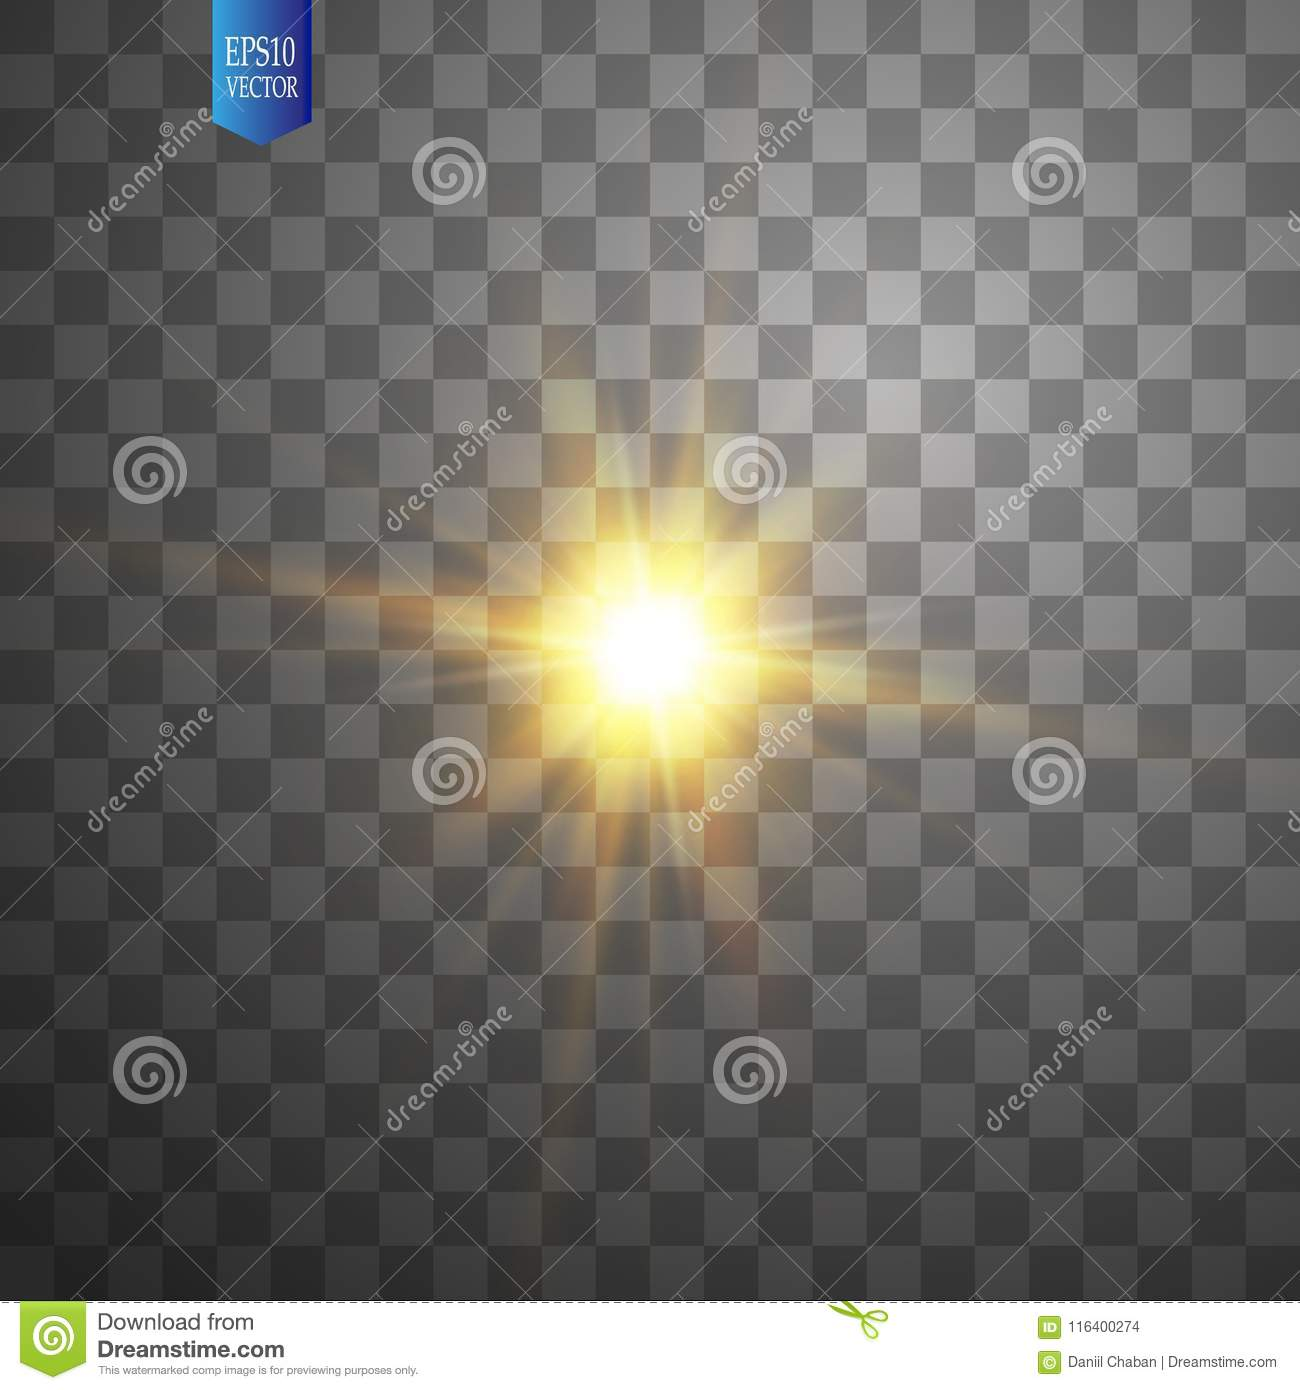 White glowing light burst explosion on transparent background. Vector illustration light effect decoration with ray